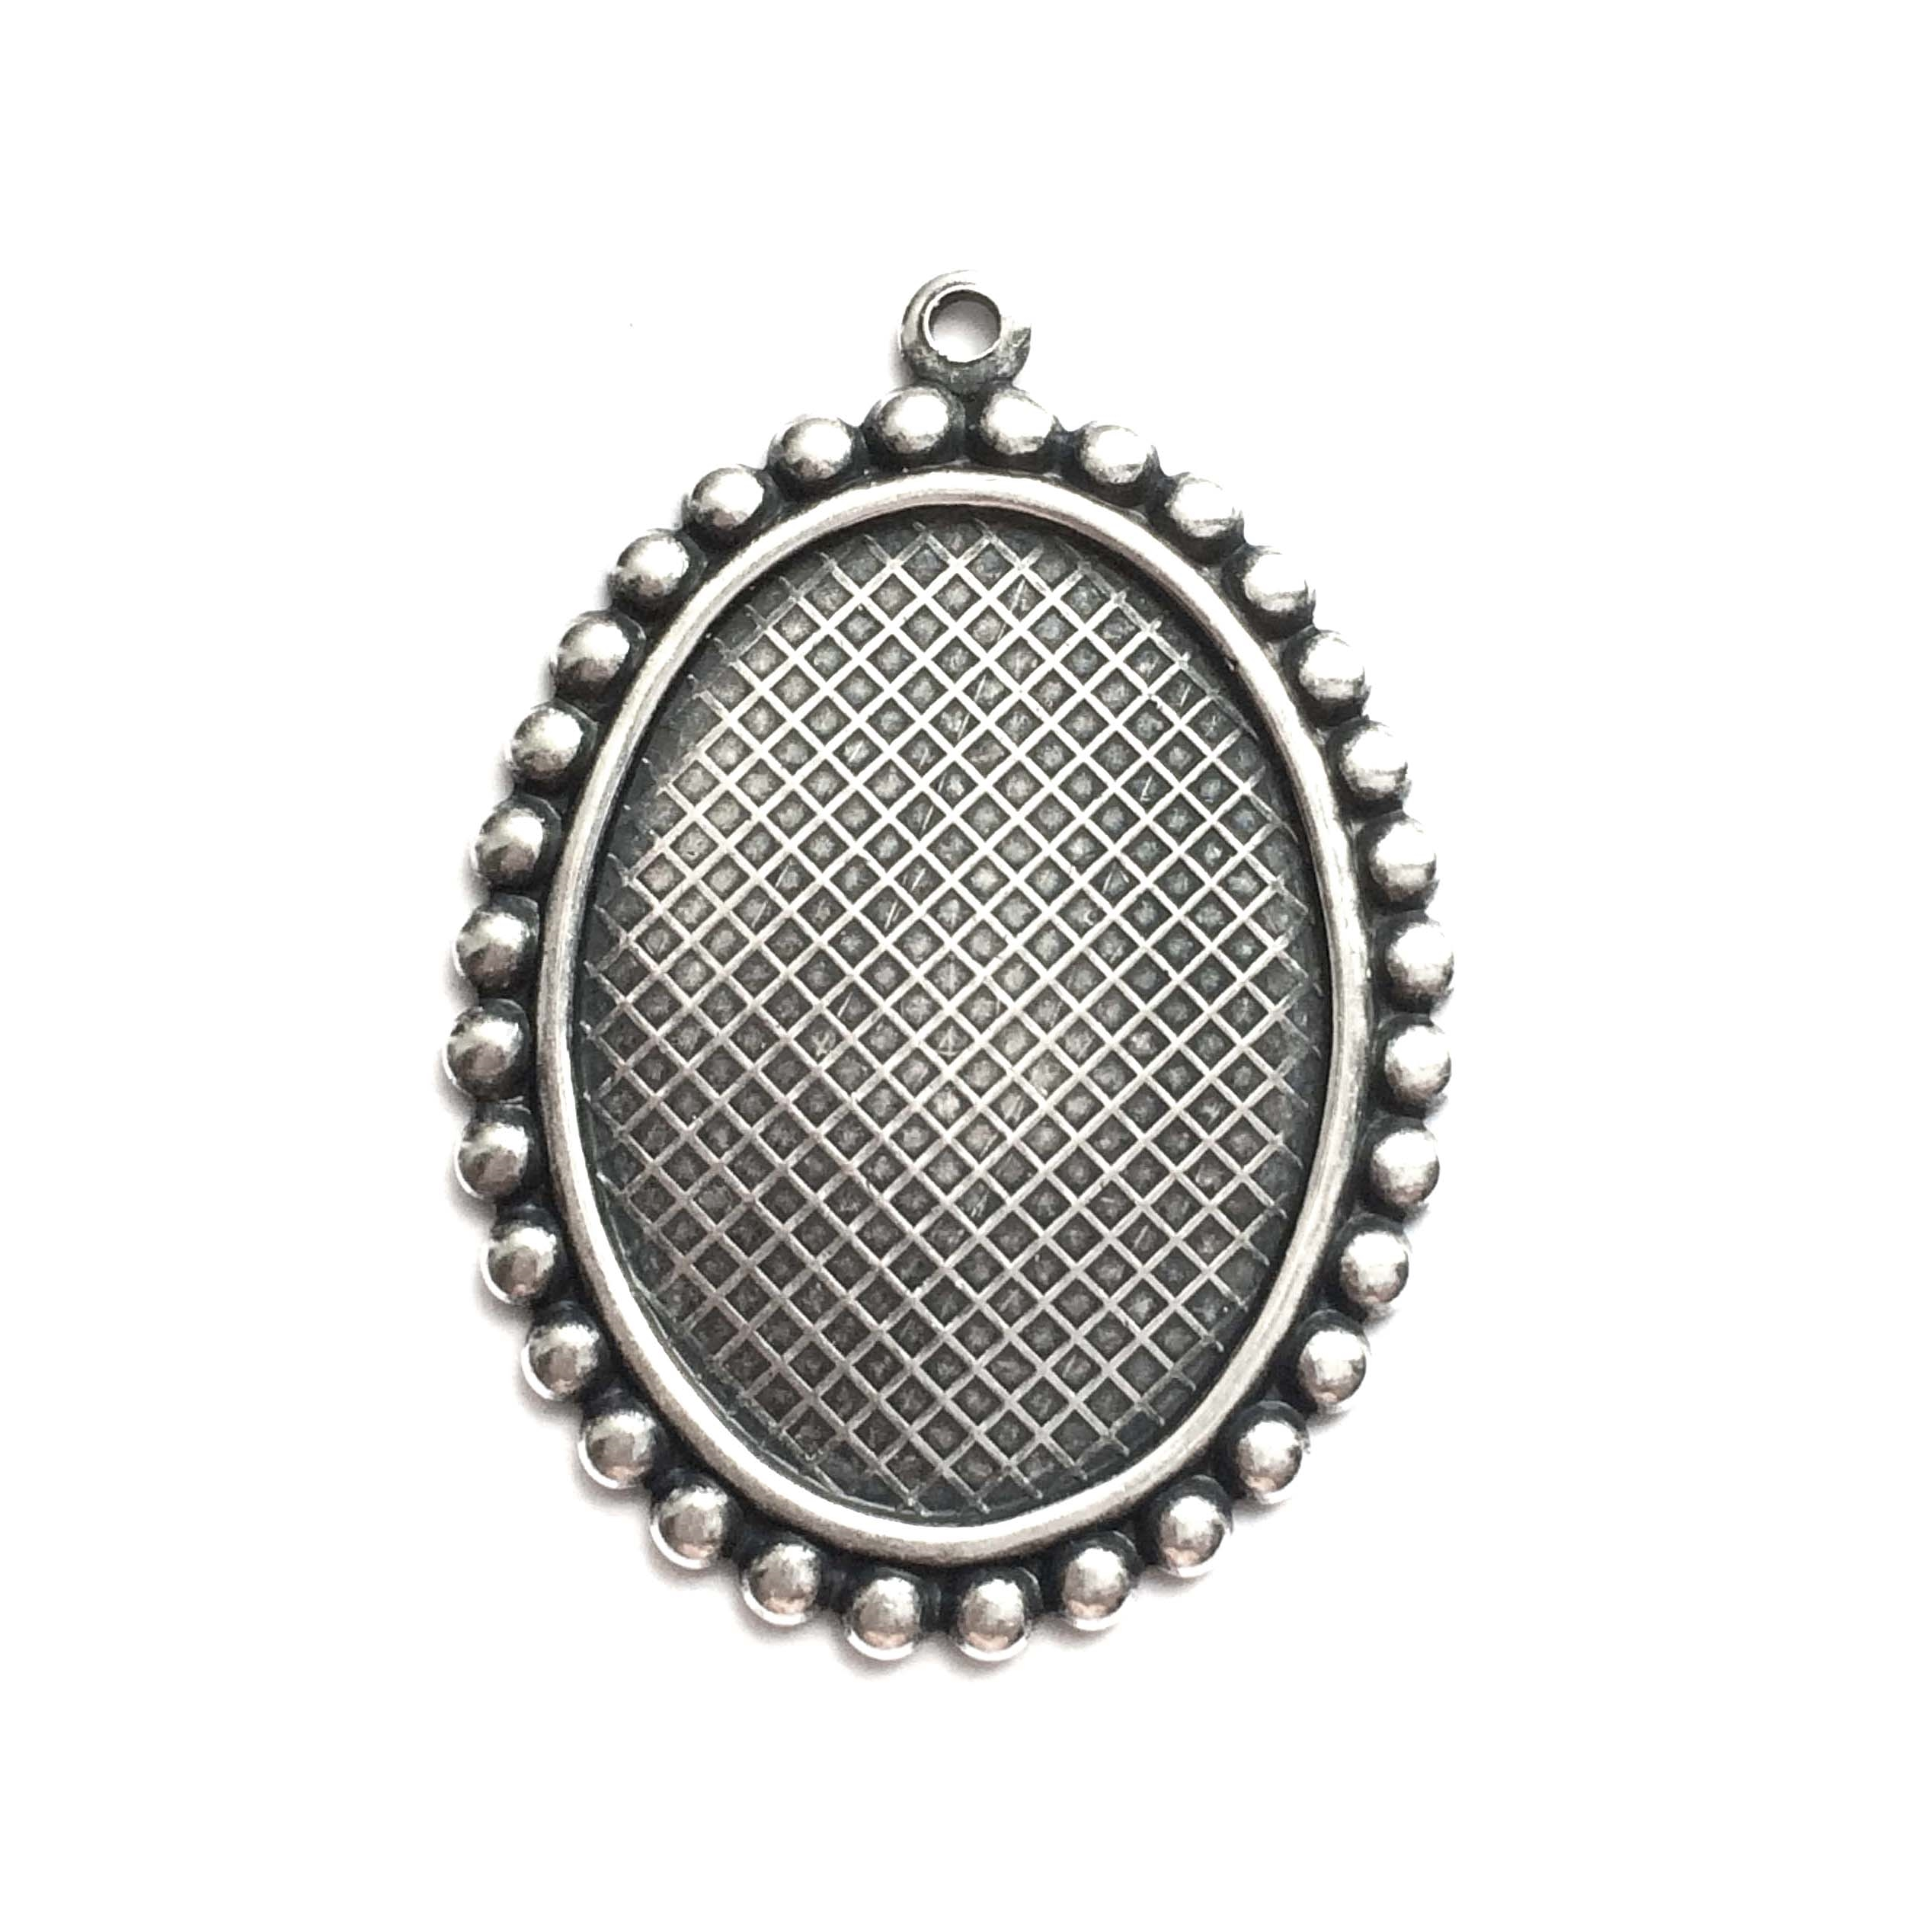 beaded edge design mount, silverware silverplate, mount, antique silver, silver, pendant top mount, pendant, bezel, 25x18mm, silverware, silverplate, us made, nickel free, B'sue Boutiques, vintage supplies, jewelry supplies, jewelry making, 02882